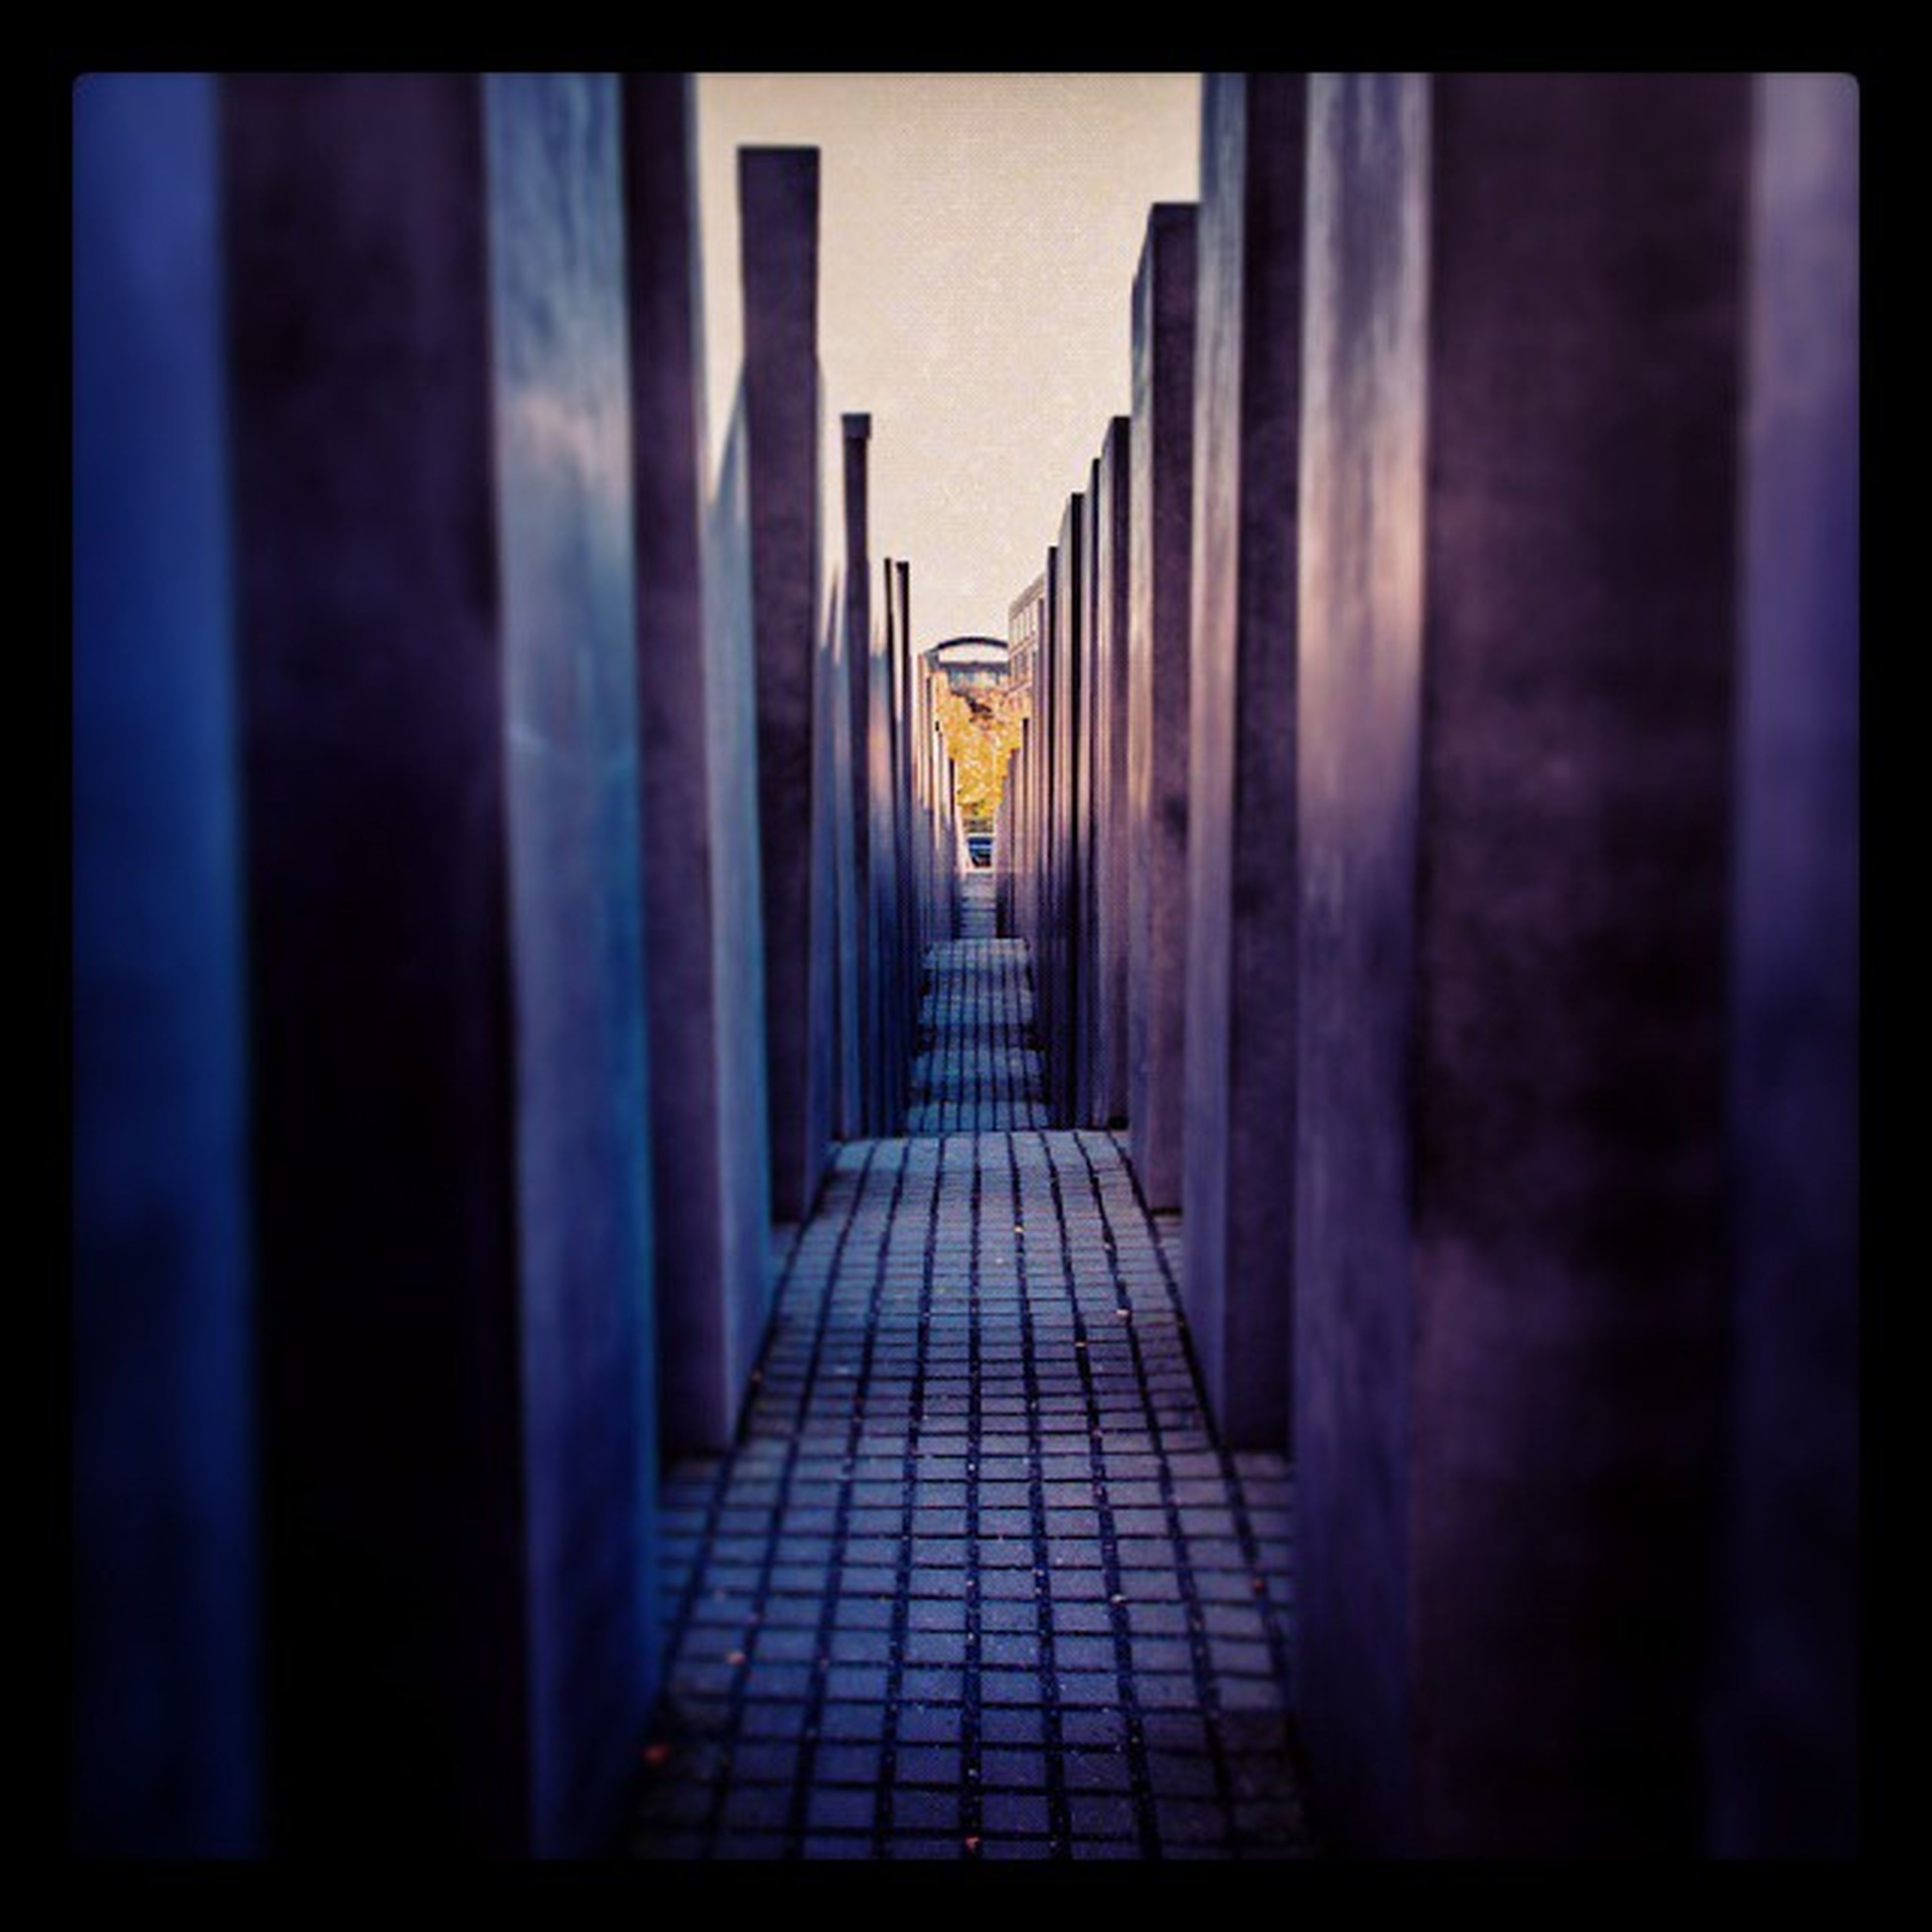 architecture, built structure, the way forward, transfer print, building exterior, diminishing perspective, auto post production filter, narrow, vanishing point, corridor, in a row, walkway, sky, building, cobblestone, long, day, architectural column, city, sunlight